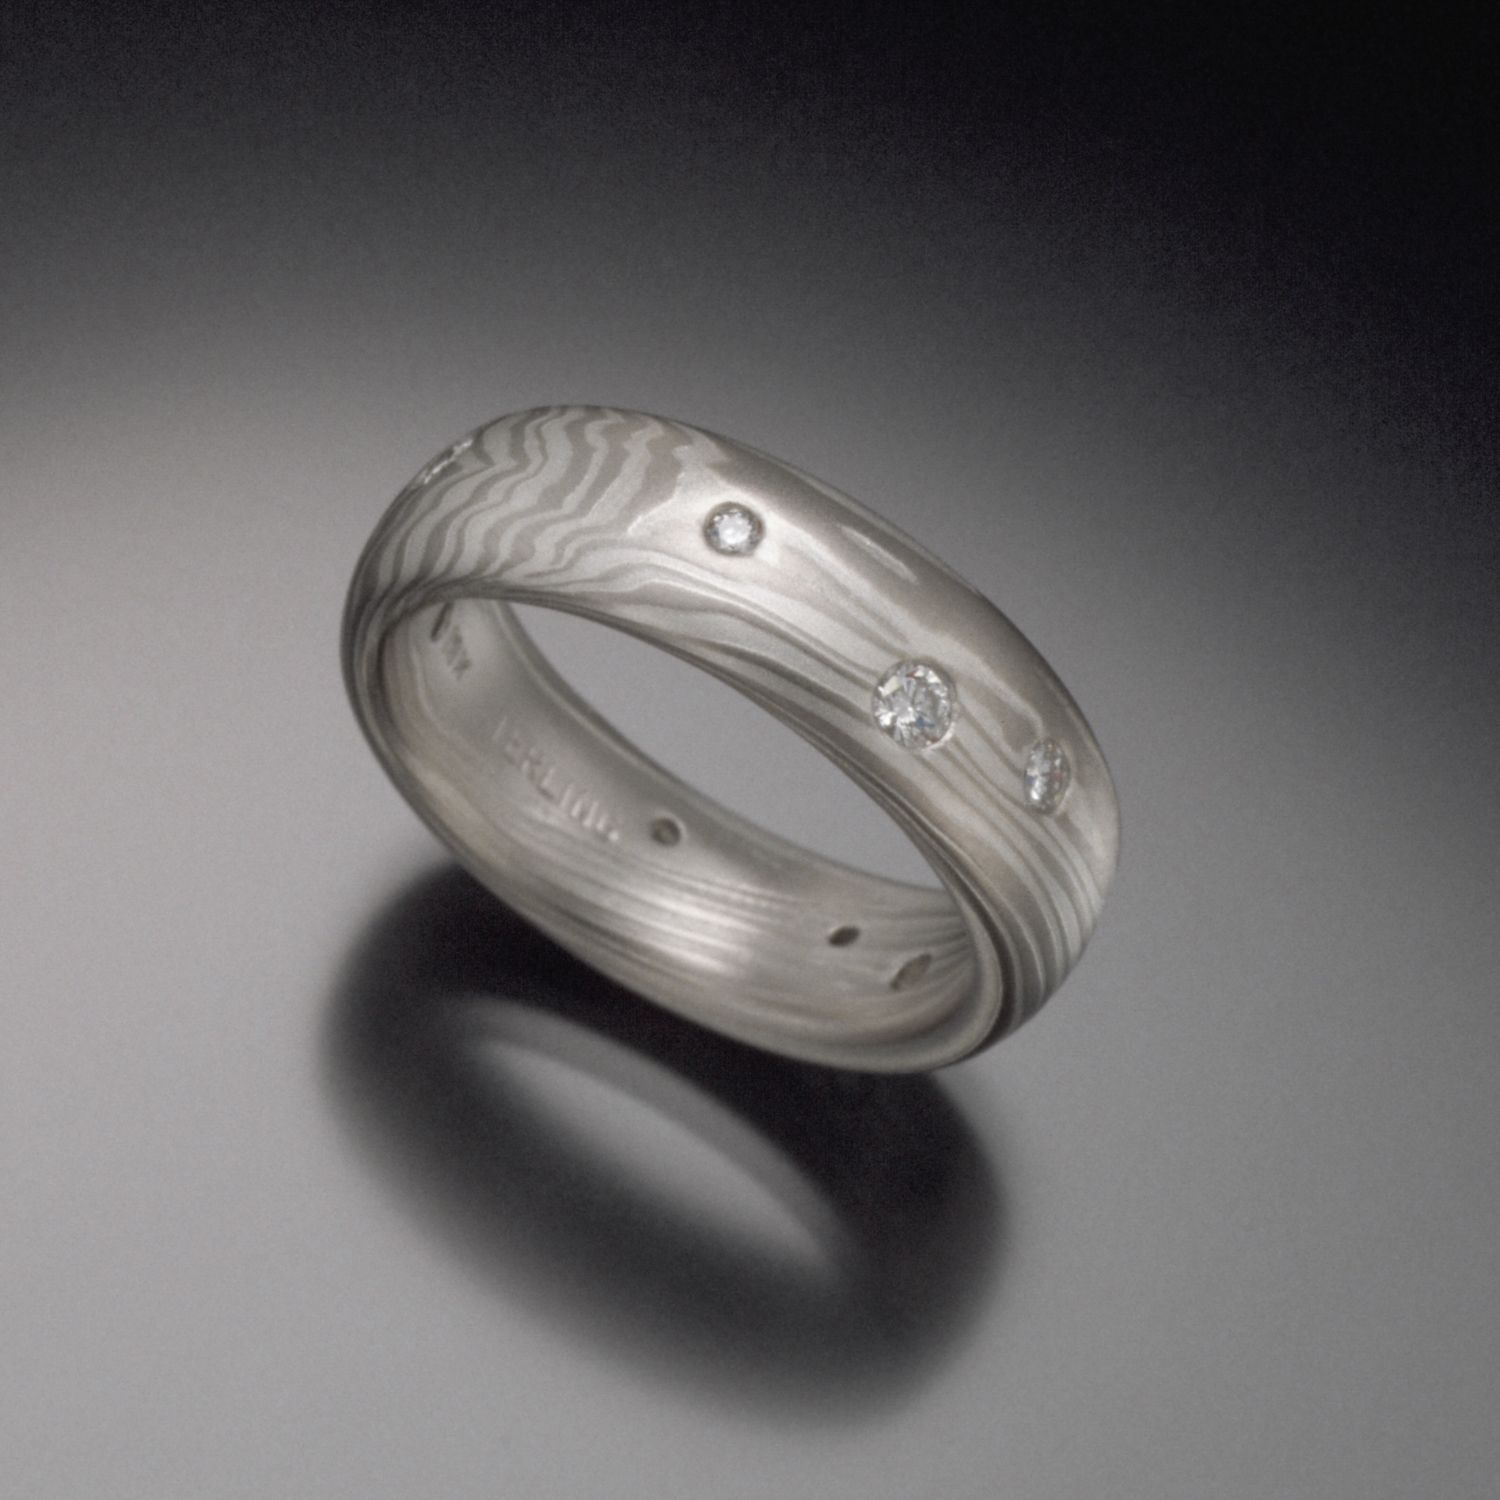 alternative wedding bands Scattered Diamond Mokume Wedding Band in 18K White Gold and Silver Artisan Made by Steven Jacob